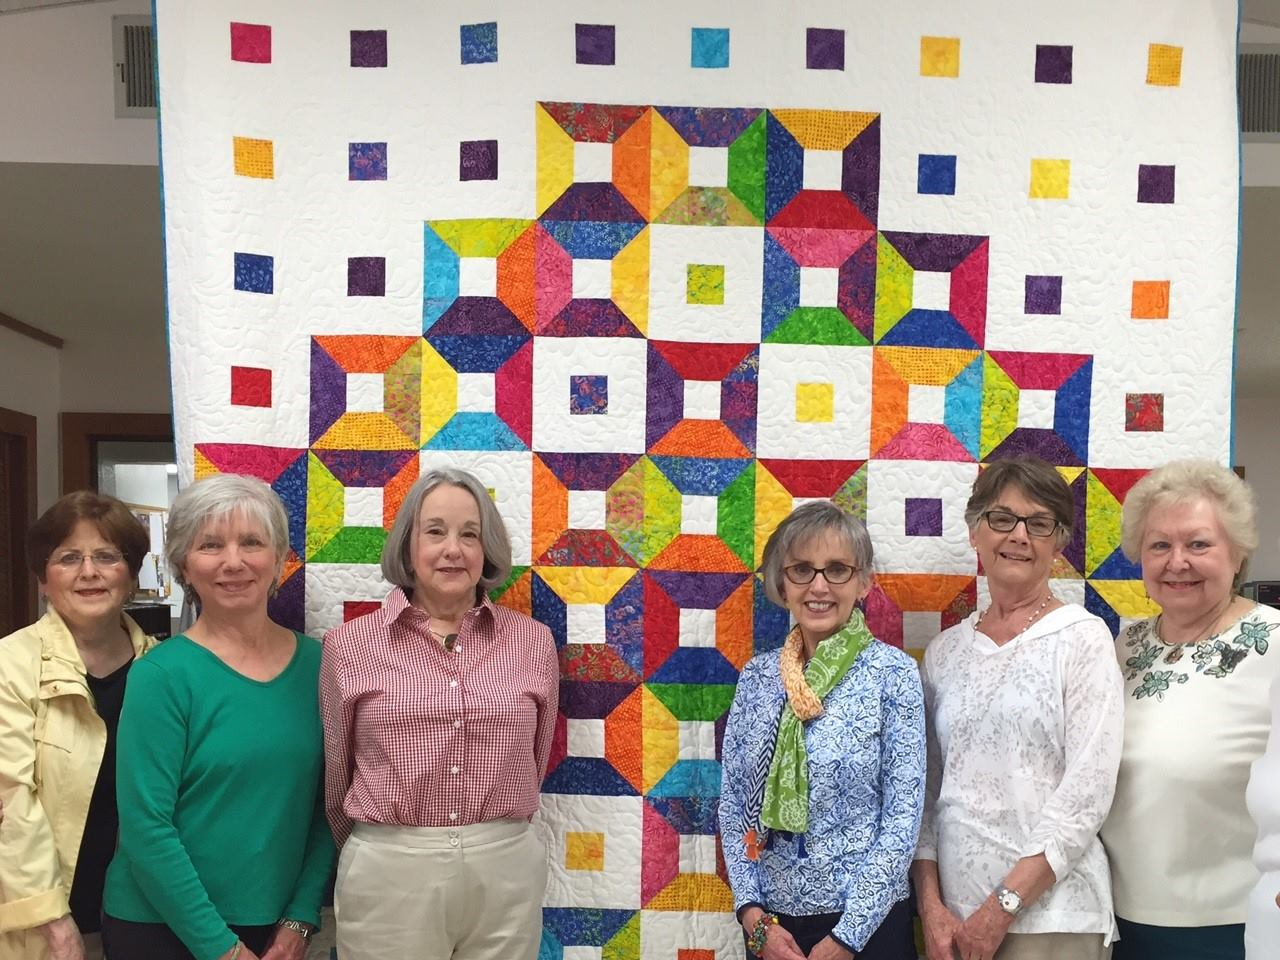 Quilt art by the shady ladies exhibition folkmoot usa for Quilt and craft show